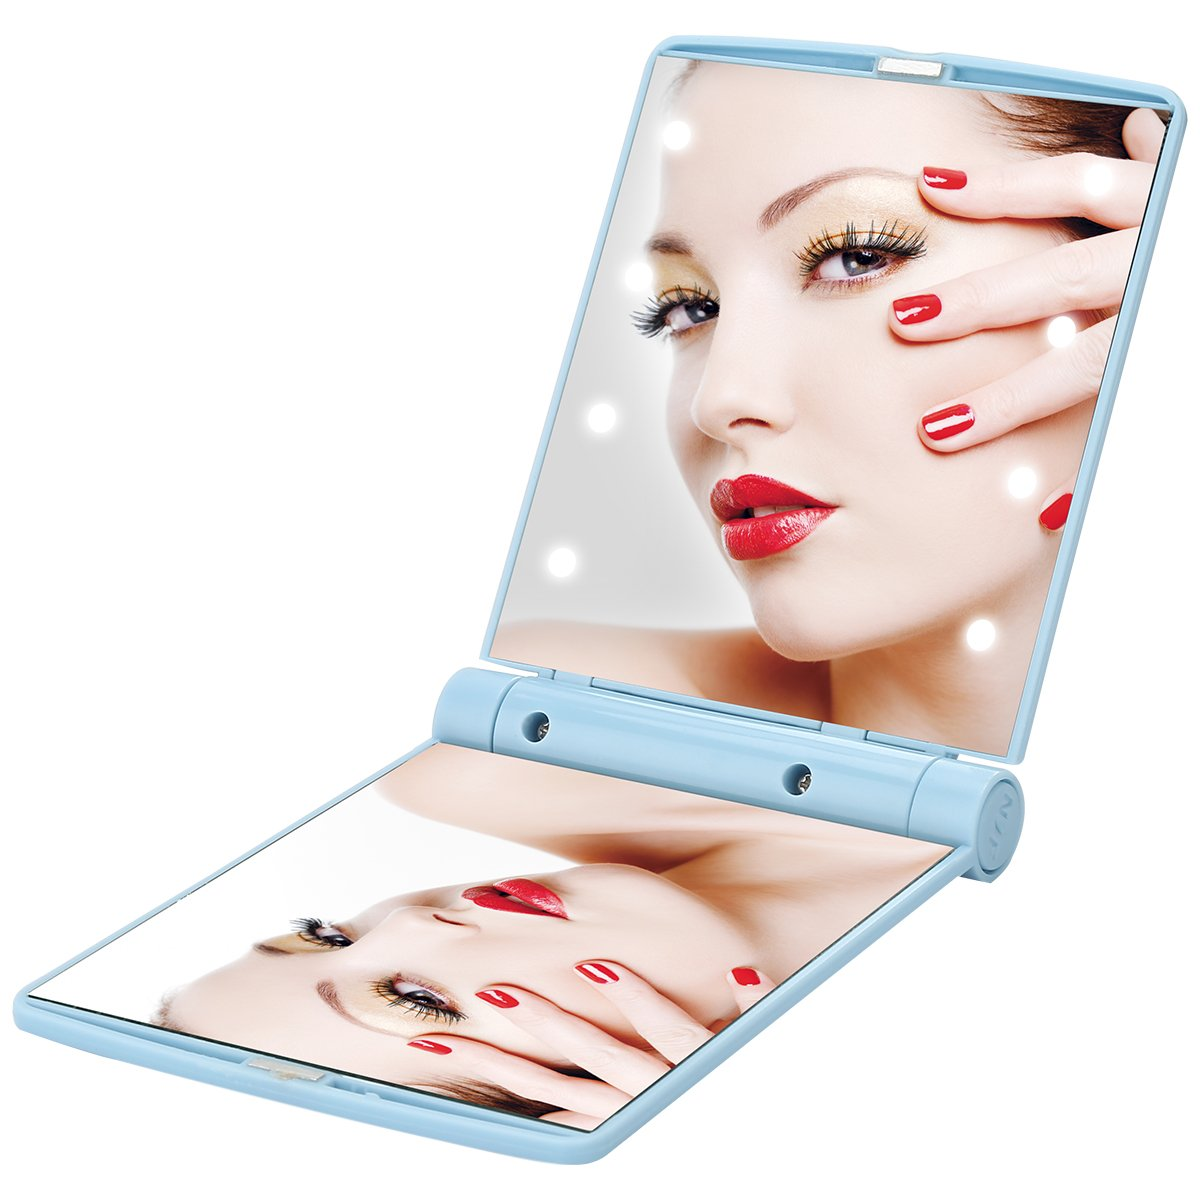 Lighted Folding Tavel Mirror Compact Led Mirrors Handheld Makeup Mini Portable Cosmetic Pocket Small Purse Size Bright Light Up In Dark Focus Illuminated For Girls (Blue)